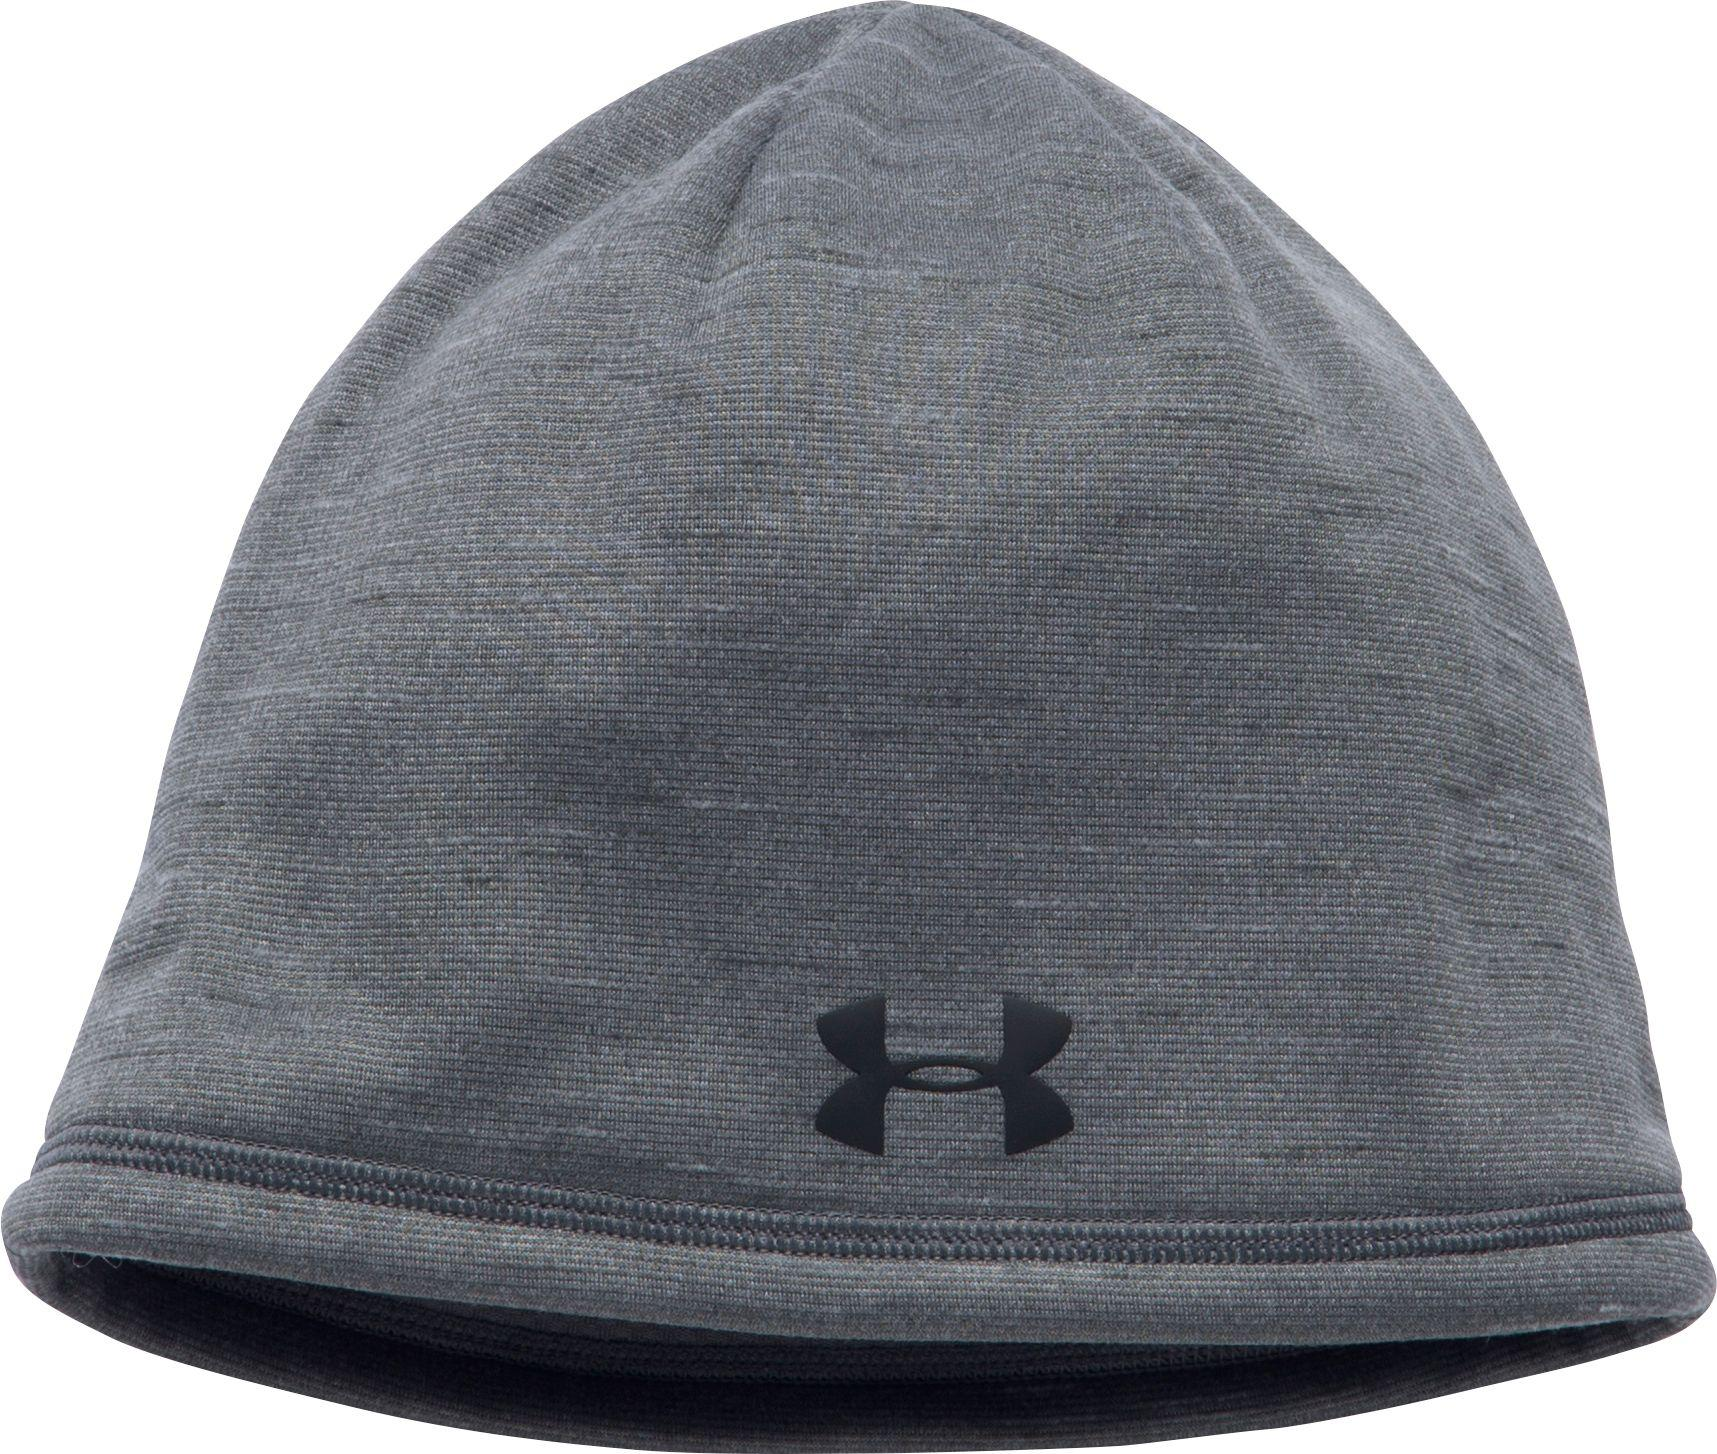 b03afc138c0 Lyst - Under Armour Coldgear Reactor Elements Beanie in Gray for Men